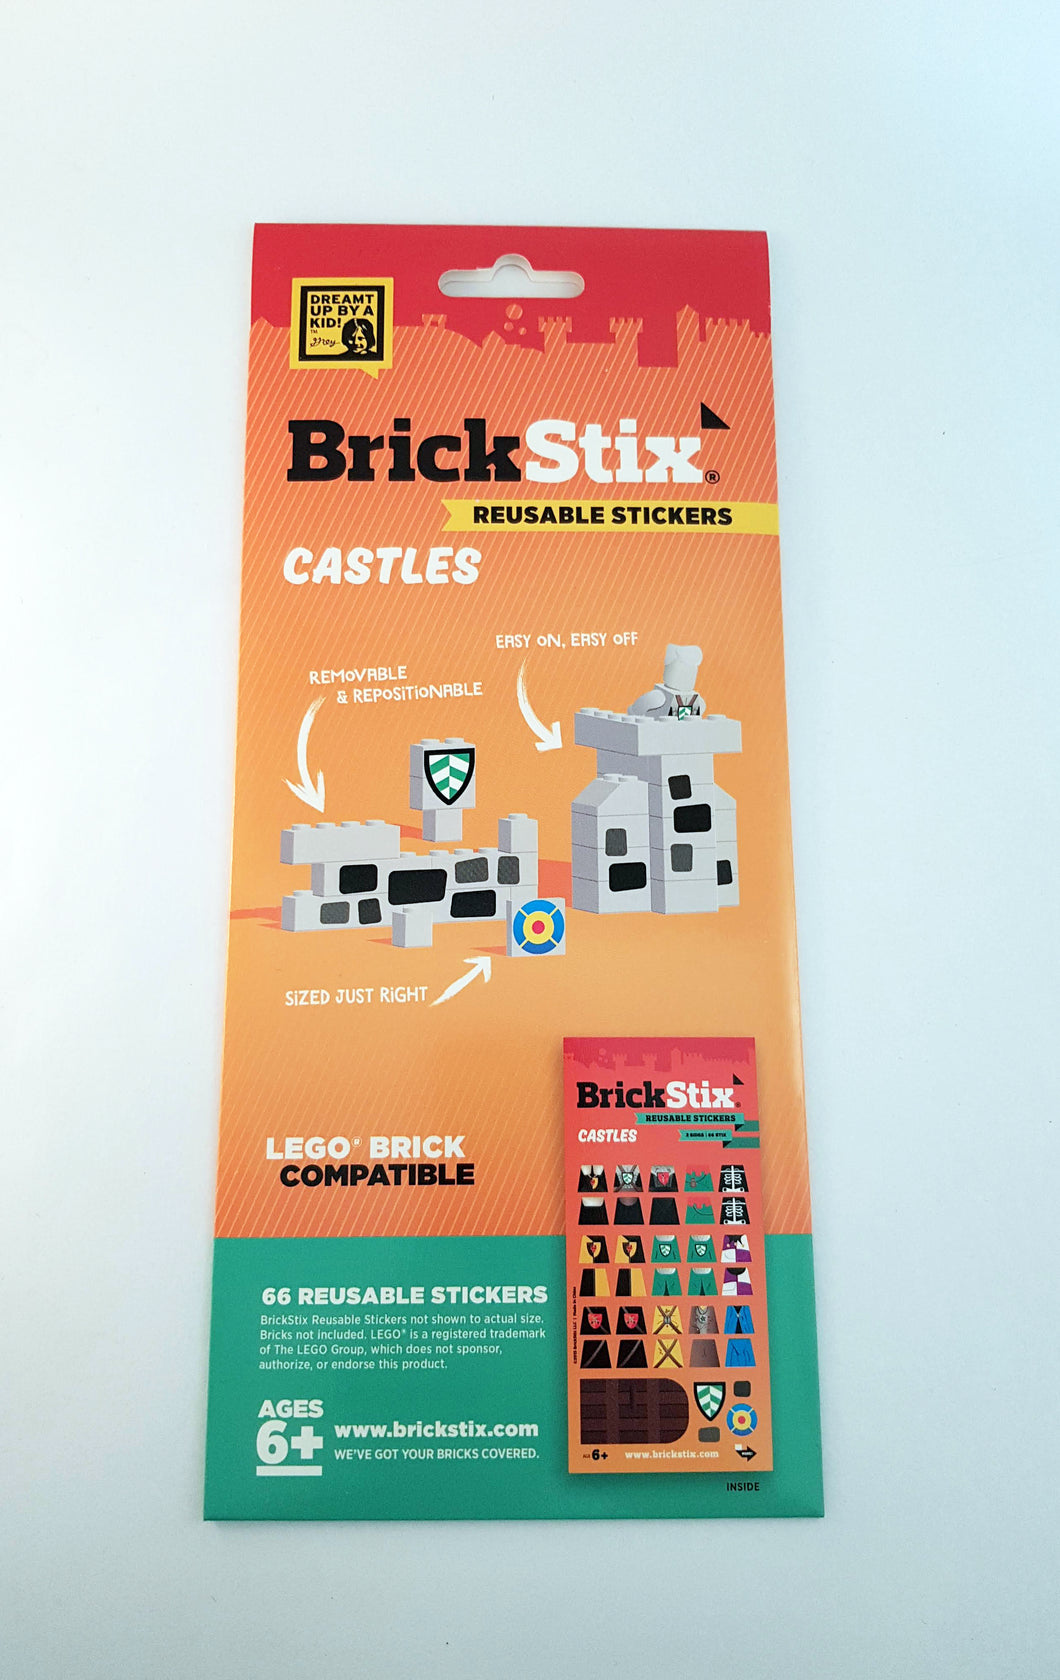 brickstix-reusable-stickers-castles